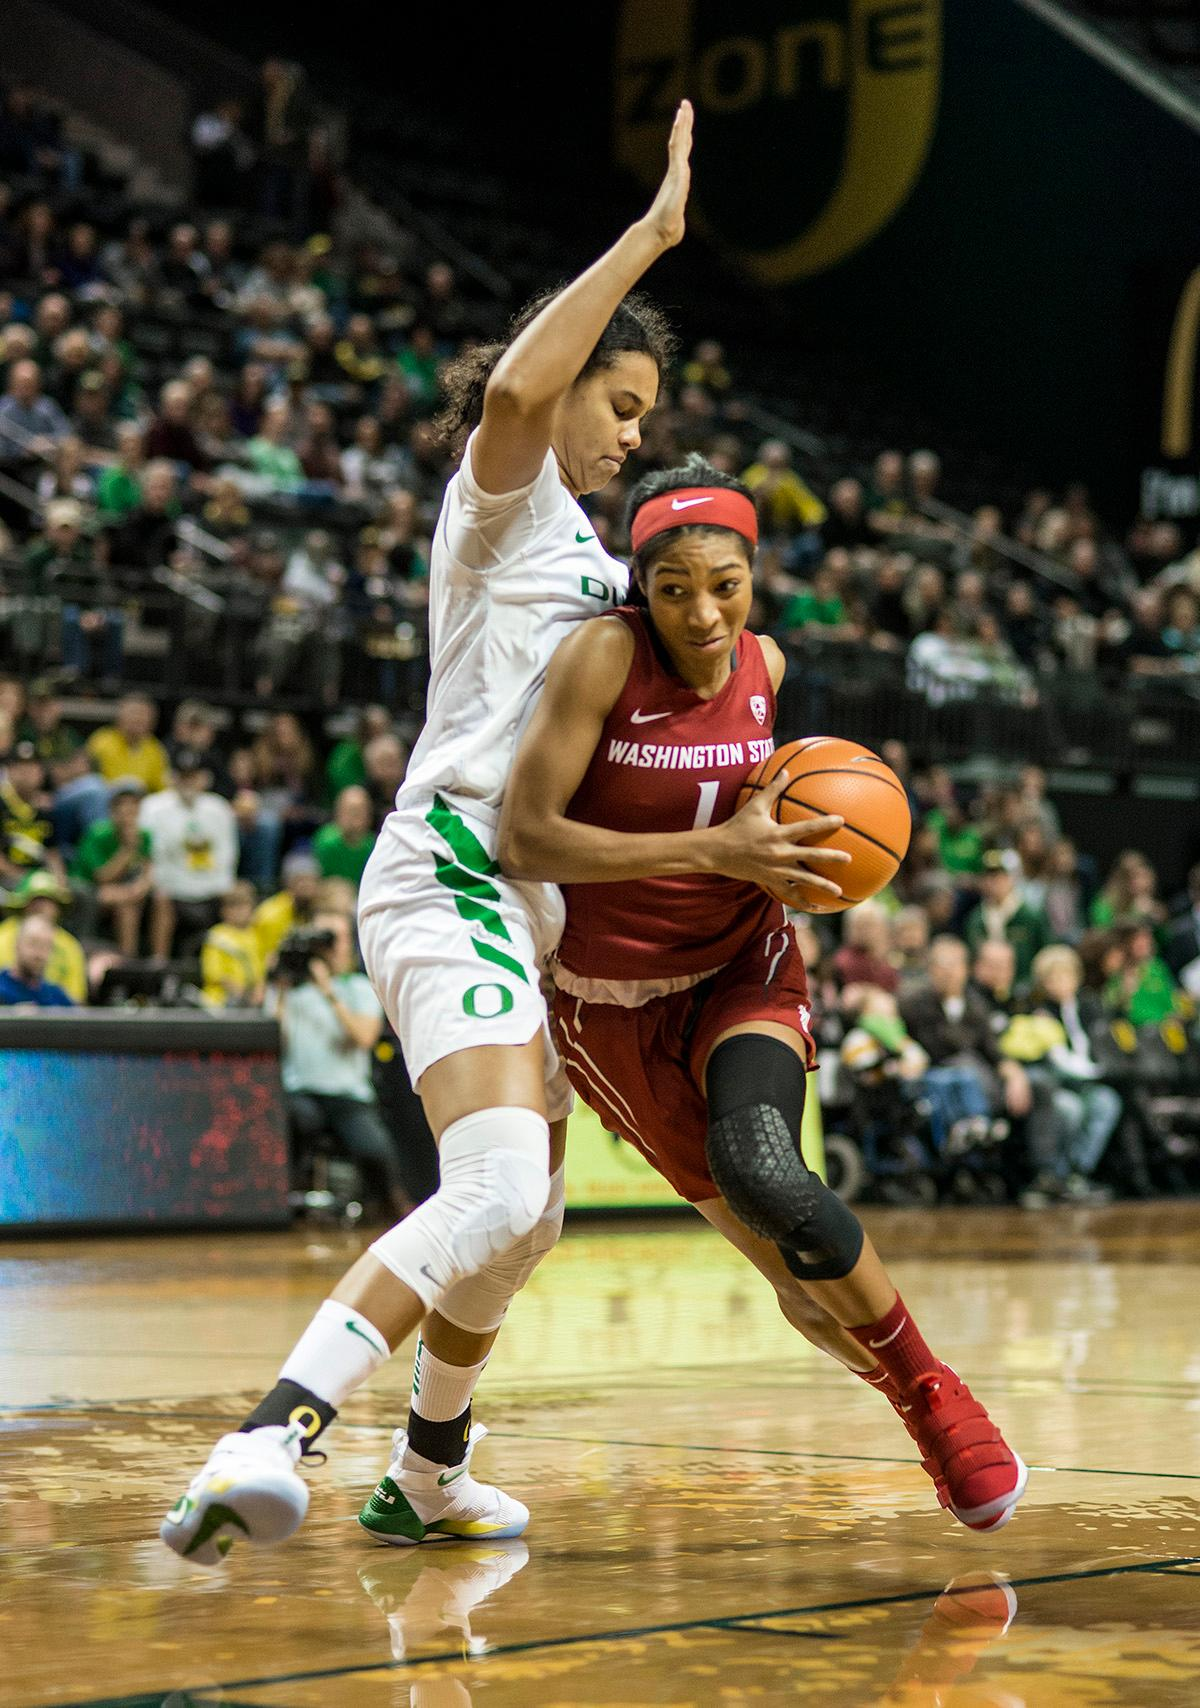 Washington State University Cougars Caila Kailey (#1) attempts to drive past the Oregon defense. In their first conference basketball game of the season, the Oregon Women Ducks defeated the Washington State Cougars 89-56 in Matt Knight Arena Saturday afternoon. Oregon's Ruthy Hebard ran up 25 points with 10 rebounds. Sabrina Ionescu shot 25 points with five three-pointers and three rebounds. Lexi Bando added 18 points, with four three-pointers and pulled down three rebounds. Satou Sabally ended the game with 14 points with one three-pointer and two rebounds. The Ducks are now 12-2 overall with 1-0 in conference and the Cougars stand at 7-6 overall and 0-1 in conference play. The Oregon Women Ducks next play the University of Washington Huskies at 1:00 pm on Sunday. Photo by Rhianna Gelhart, Oregon News Lab